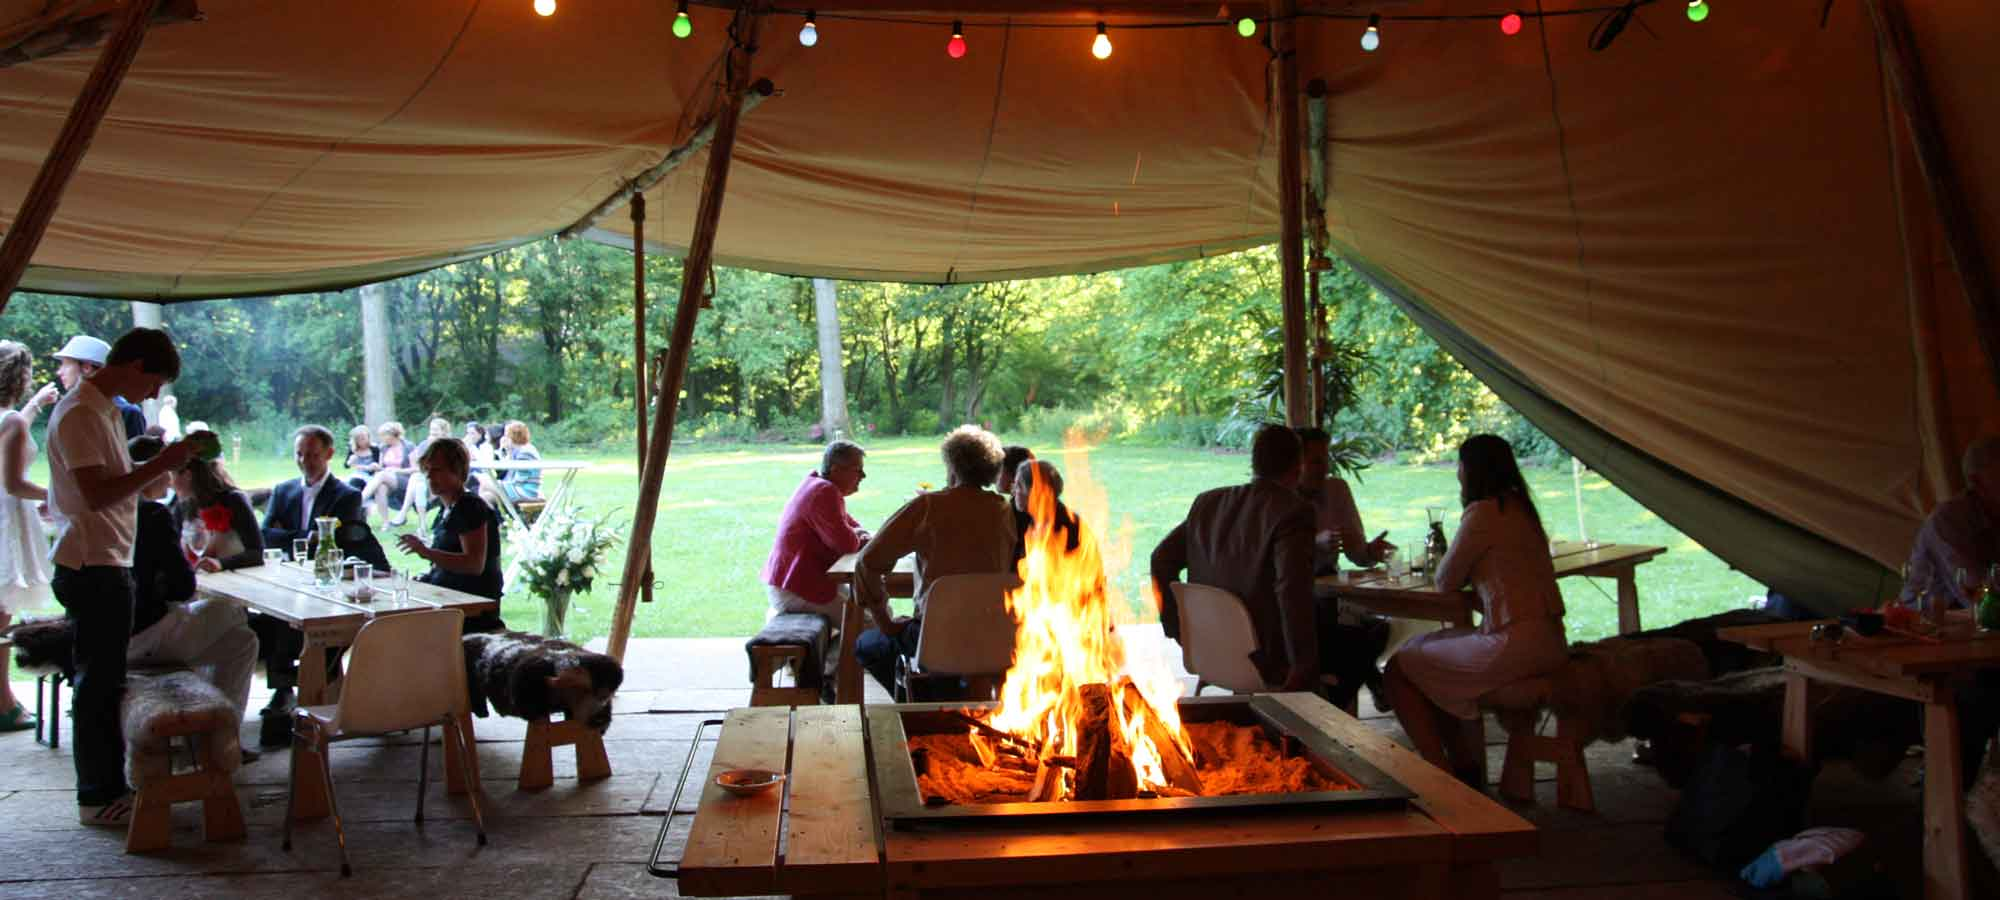 Tentipi interior and open fire - giant hat tents for sale